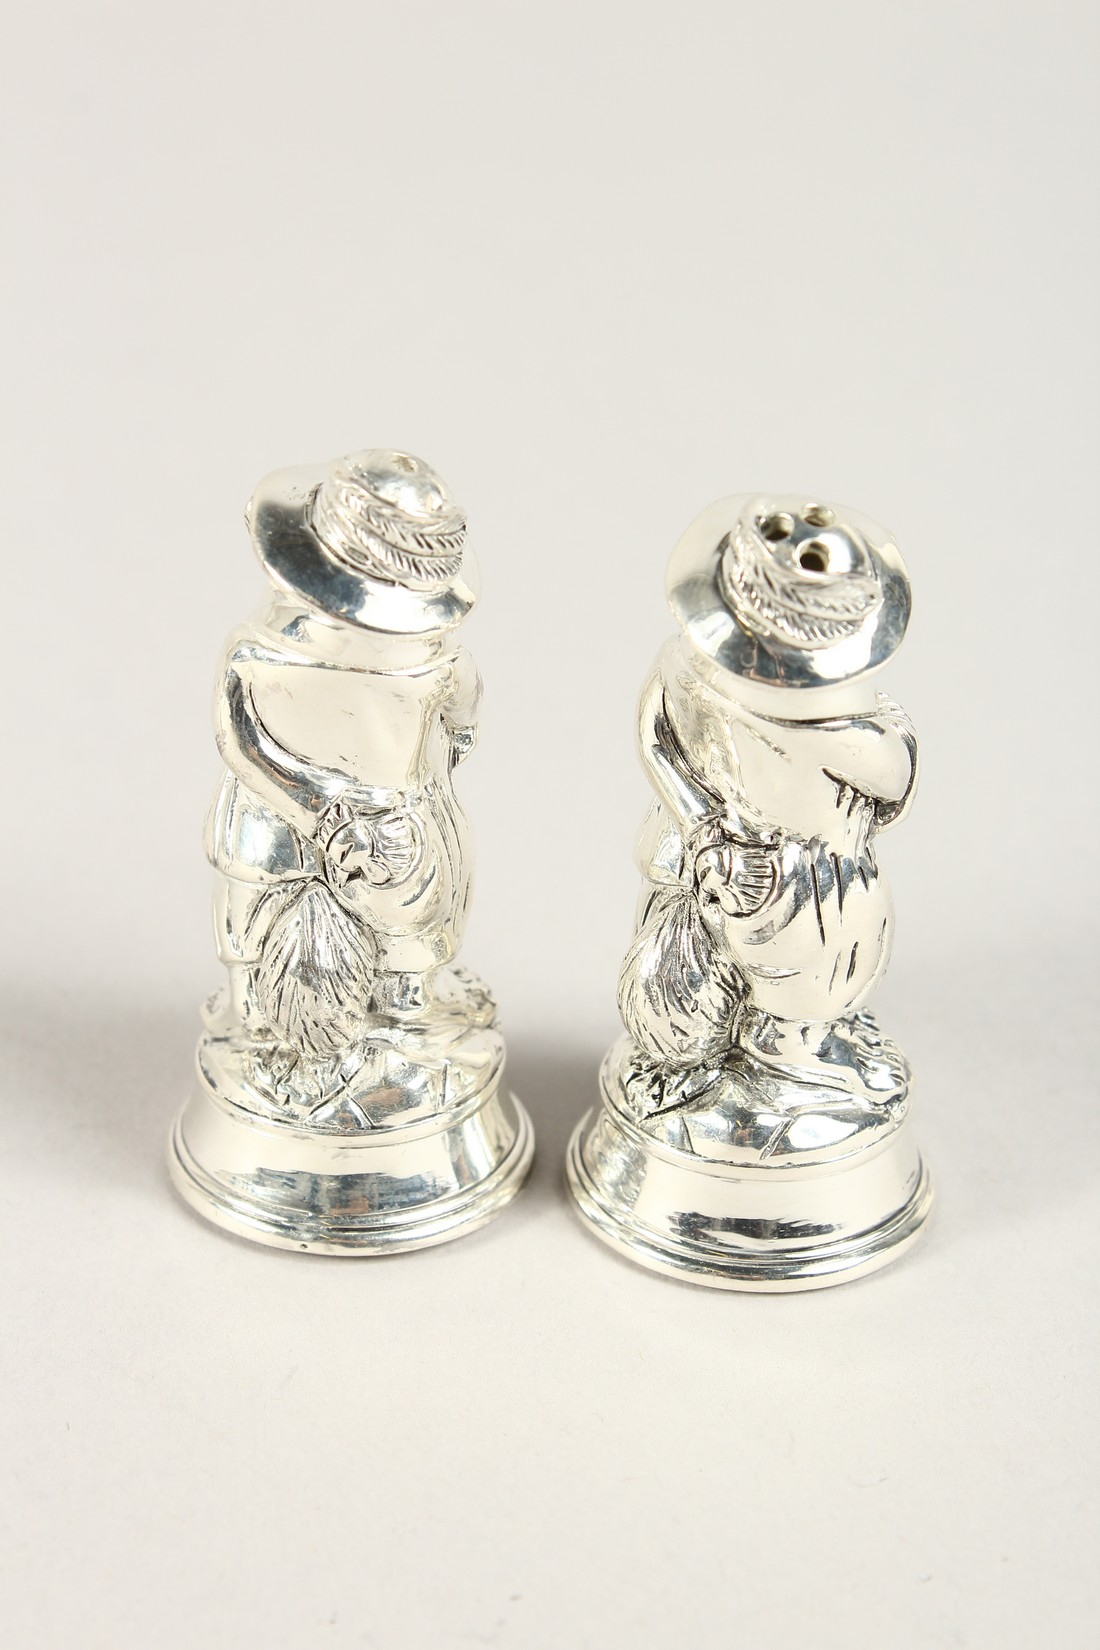 A PAIR OF SILVER PLATE FOX SALT AND PEPPERS - Image 2 of 4